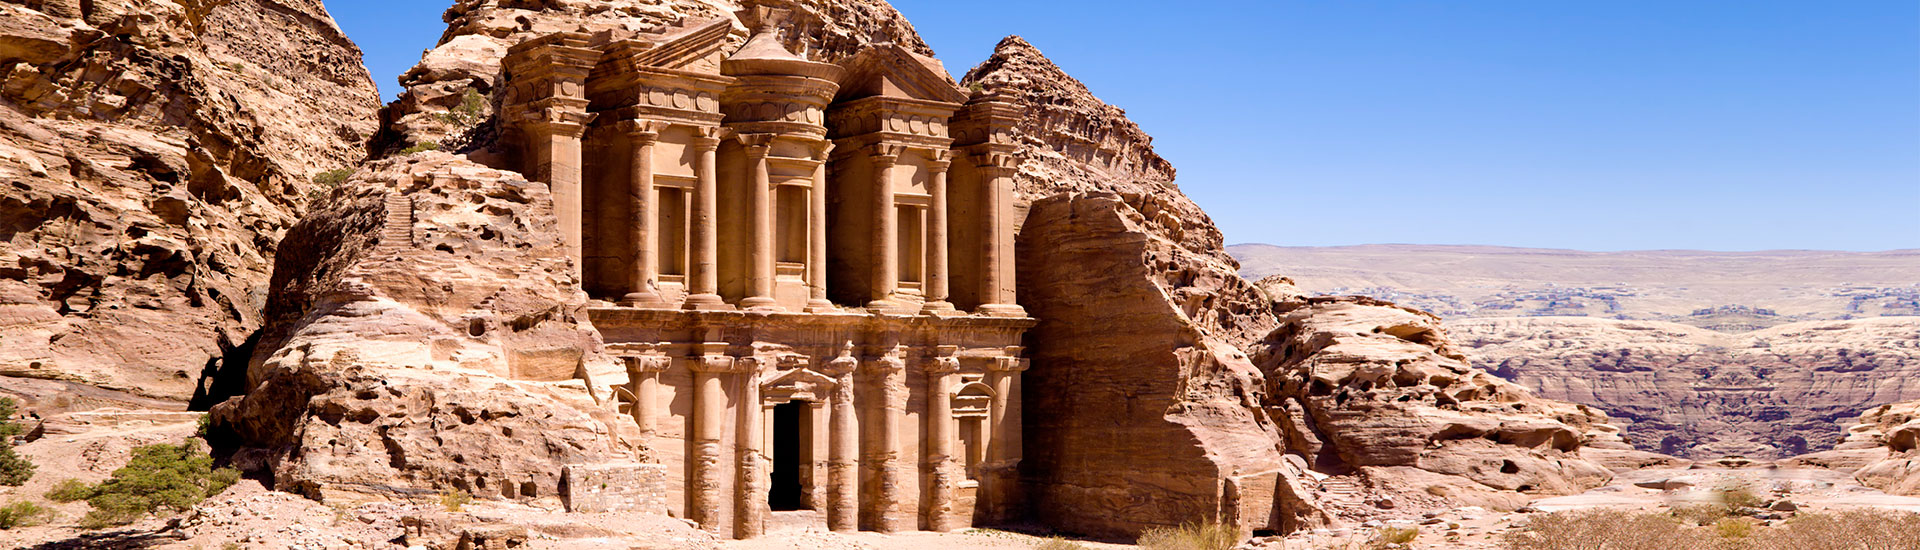 Journey Into The Past On Your Next Trip To Jordan